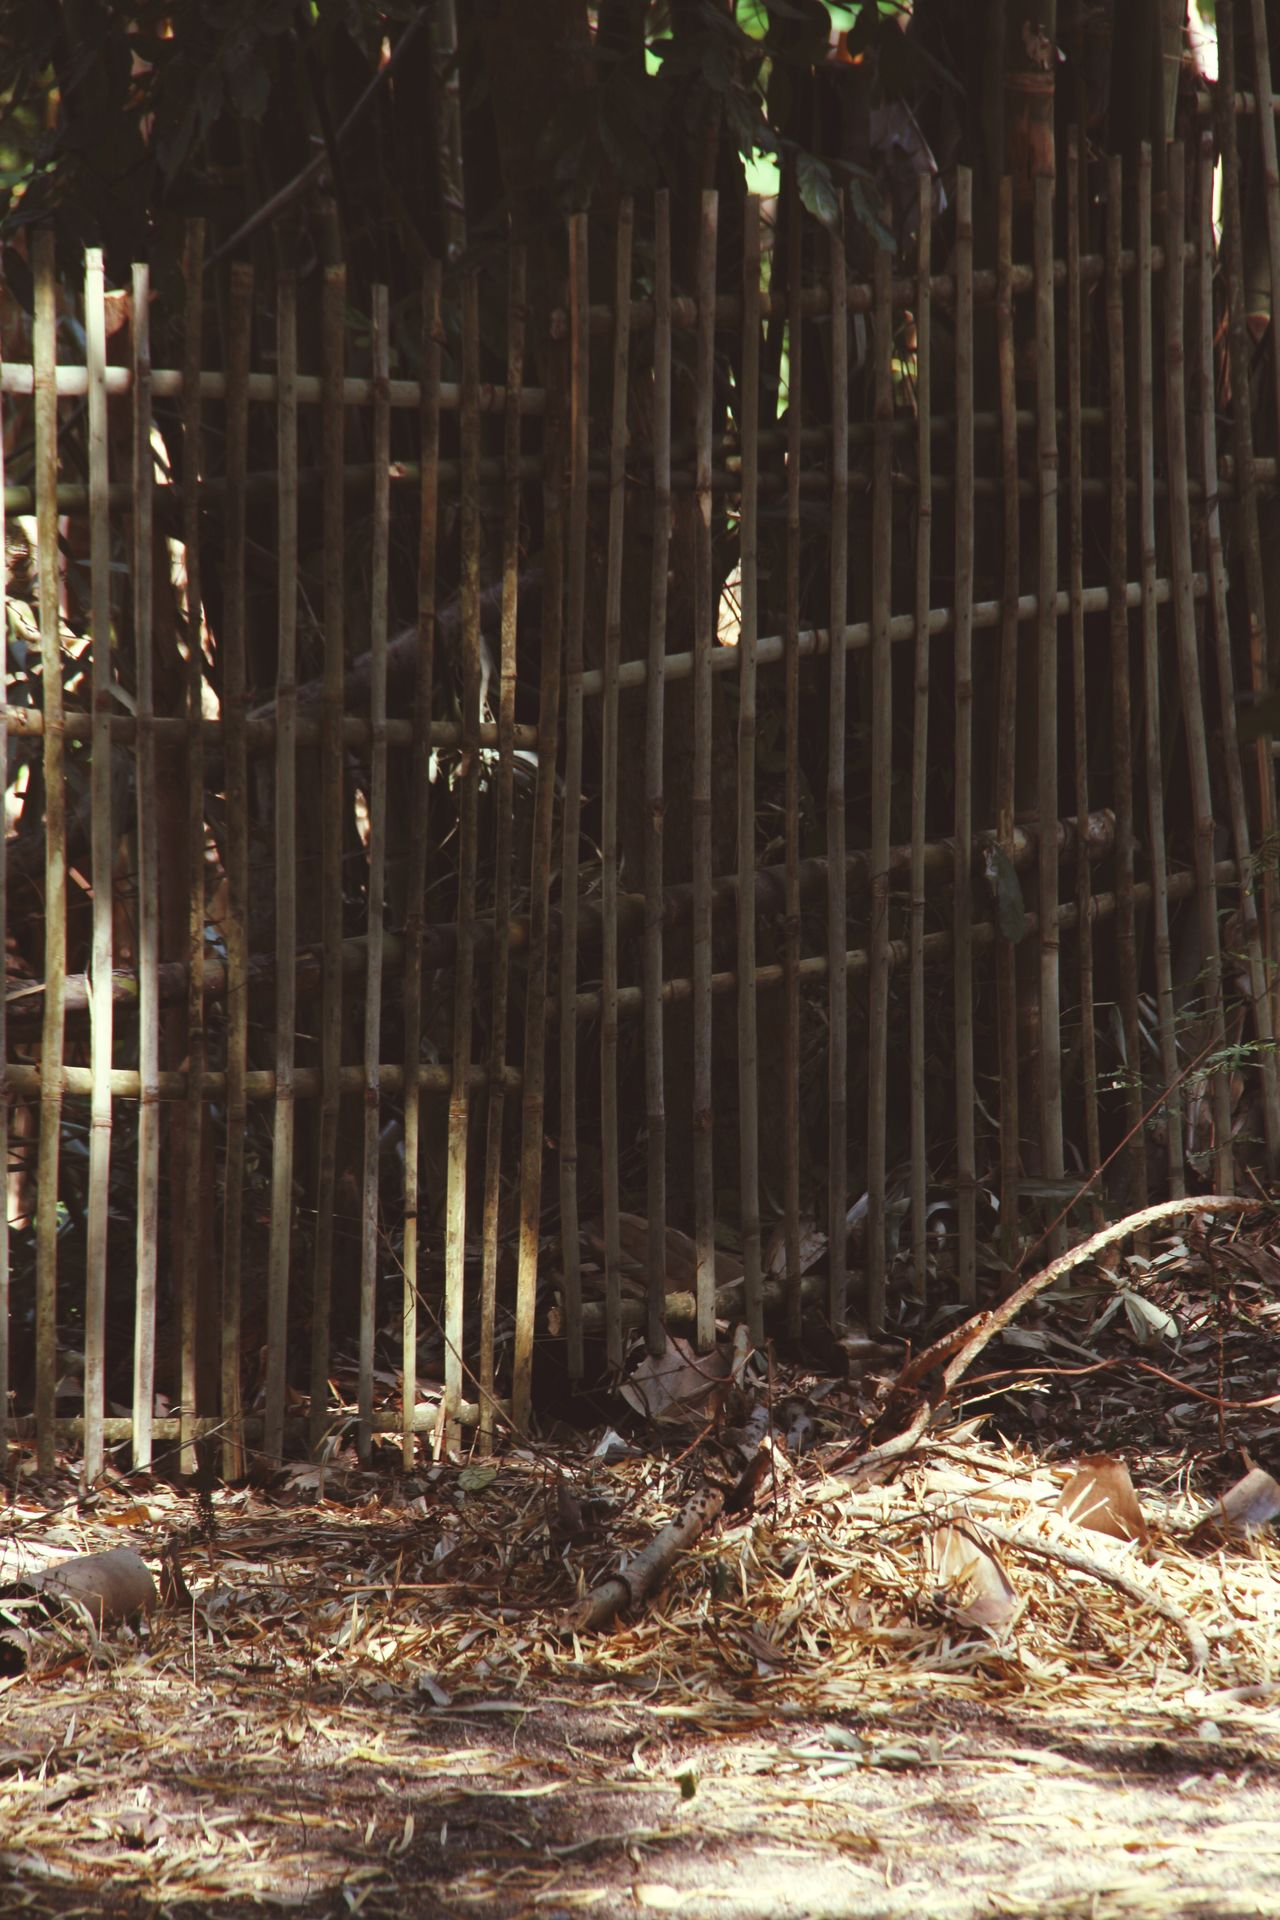 Bamboo Fence Dry Leaves Outdoors No People Fall Season Brown Local Life in North Thailand South East Asia